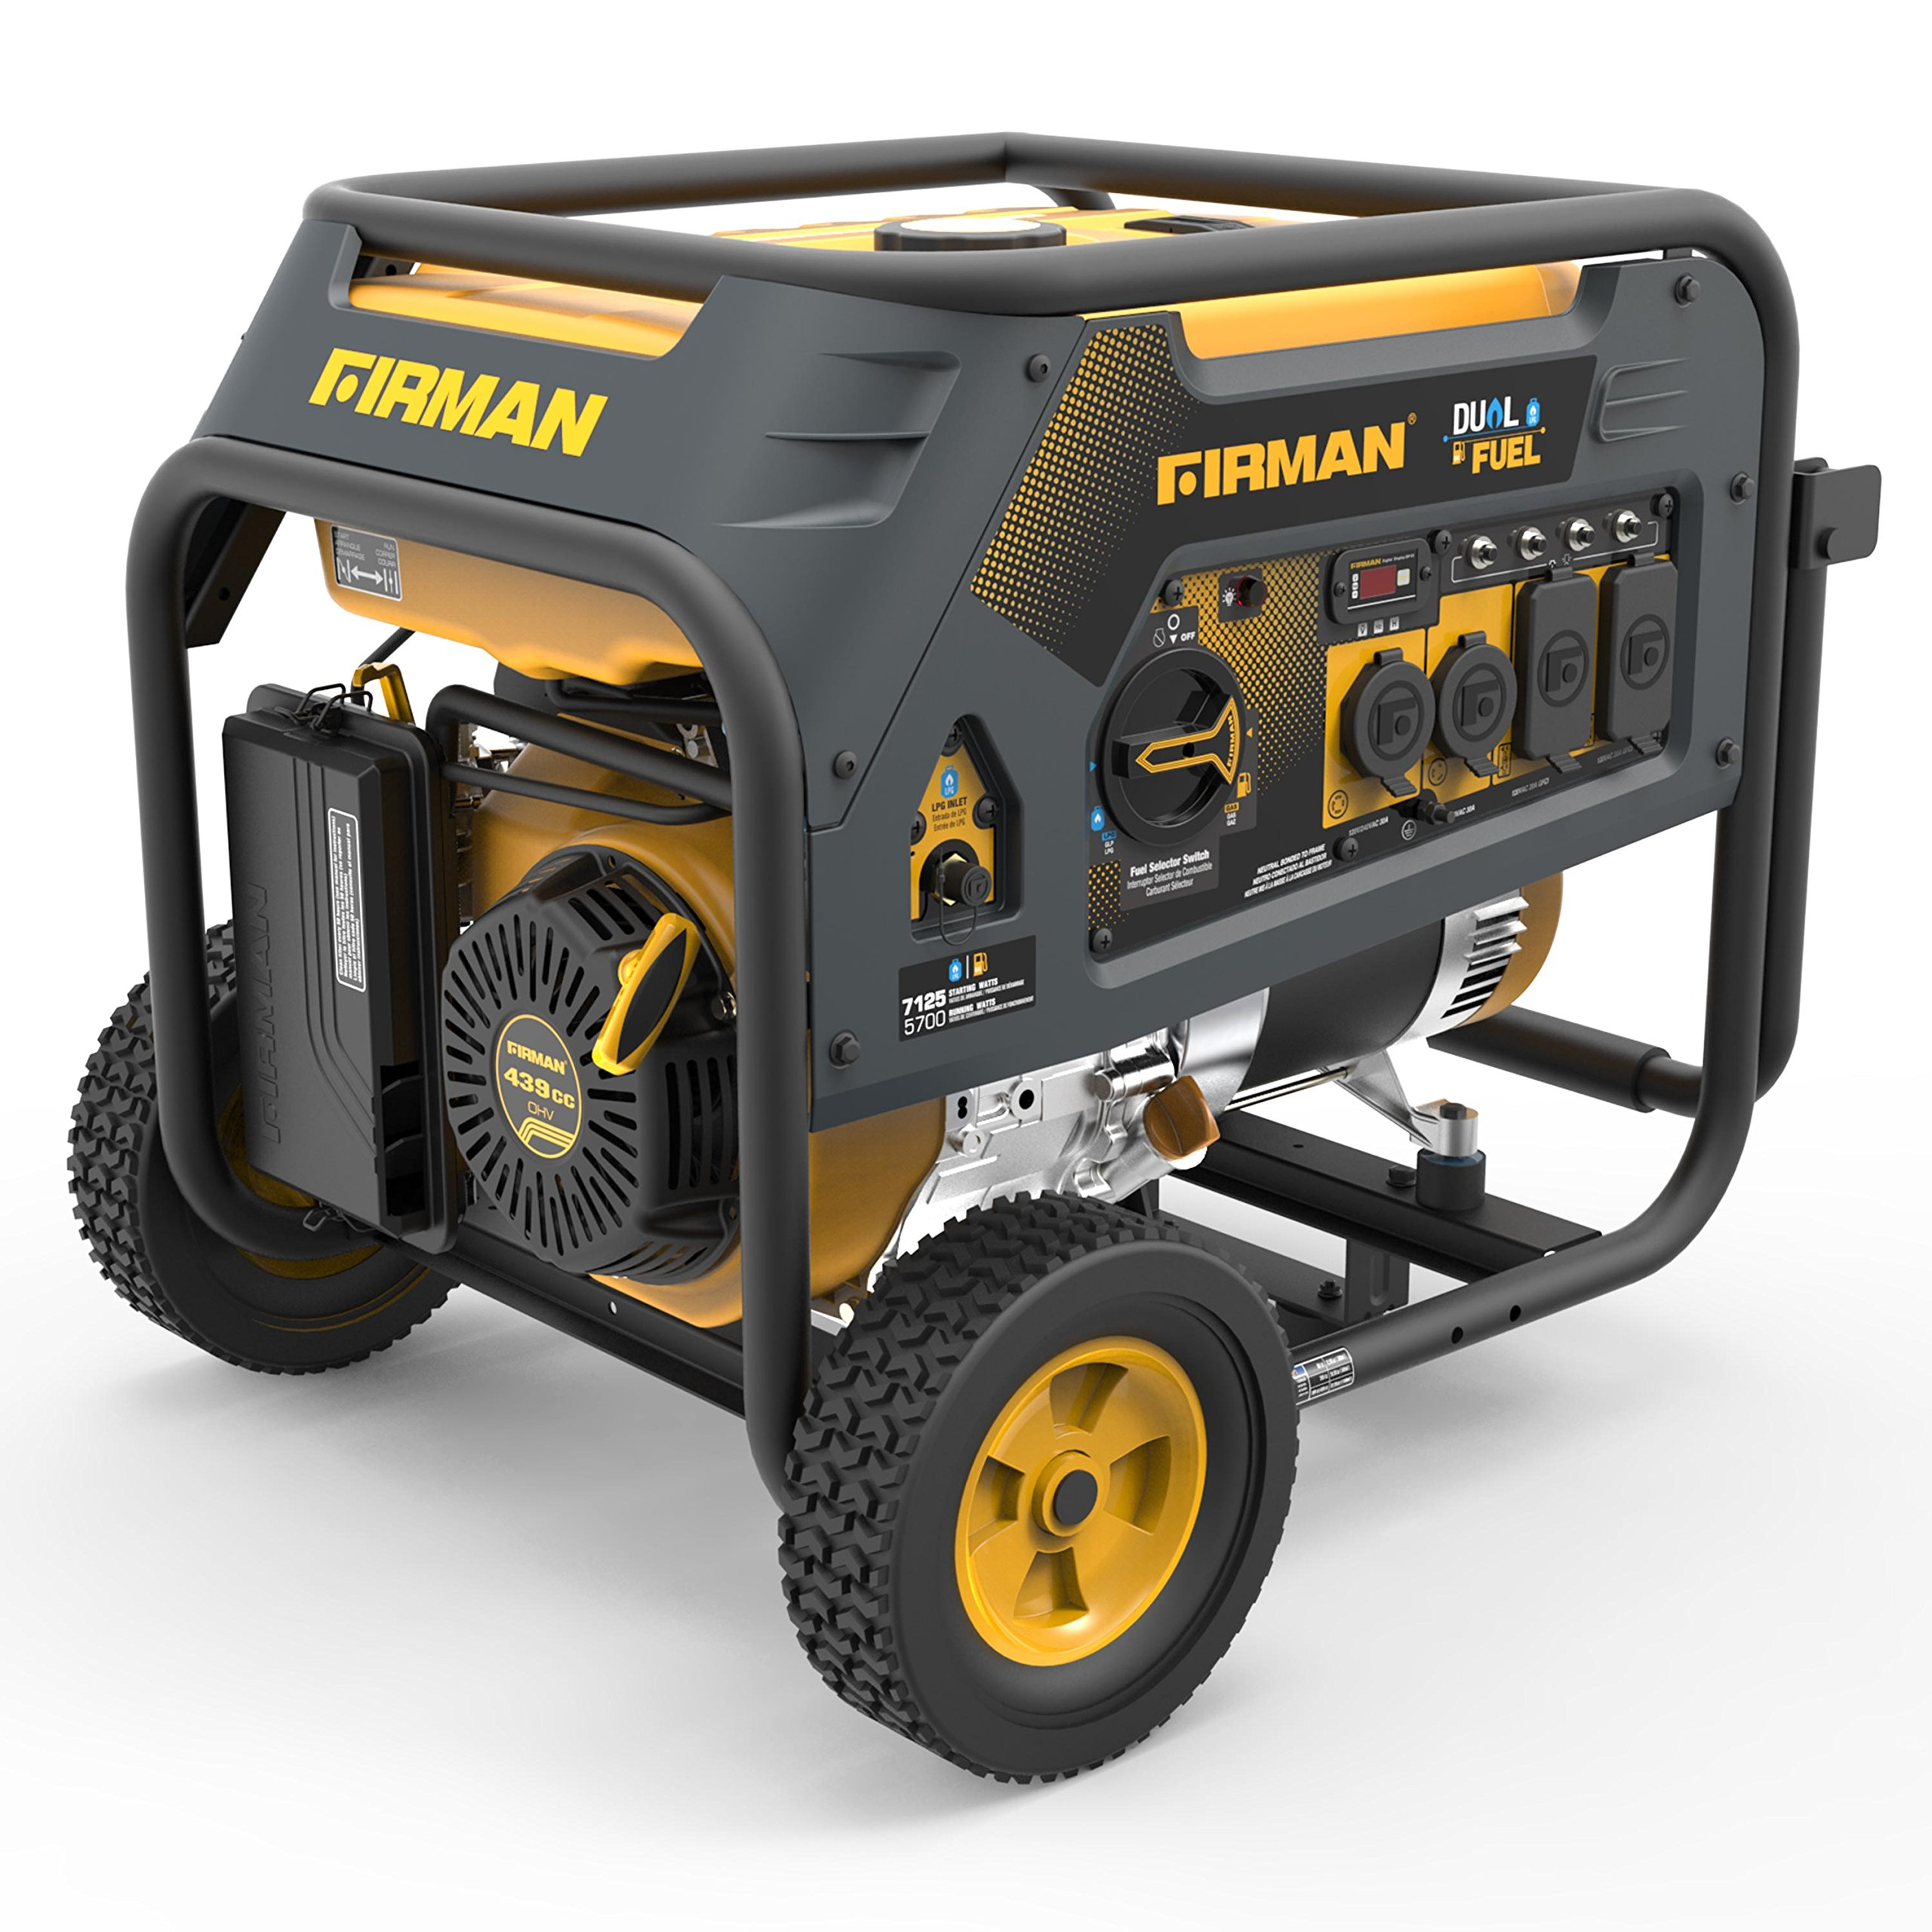 Firman H05752 7125/5700 Watt 120/240V Recoil Start Gas or Propane Dual Fuel Portable Generator by Firman